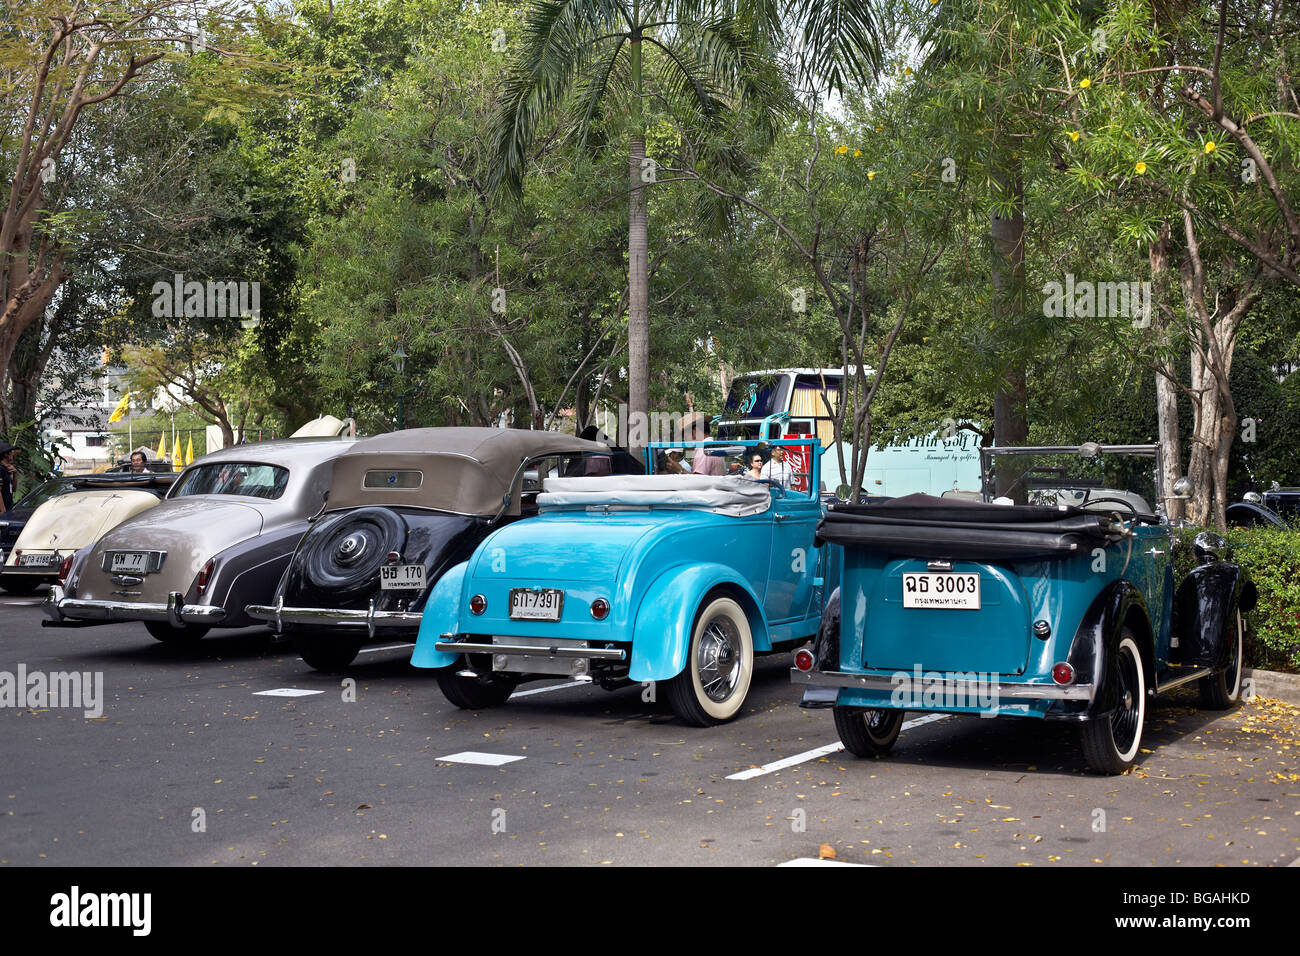 Line up of classic motor cars at a vintage car rally. Thailand S. E ...